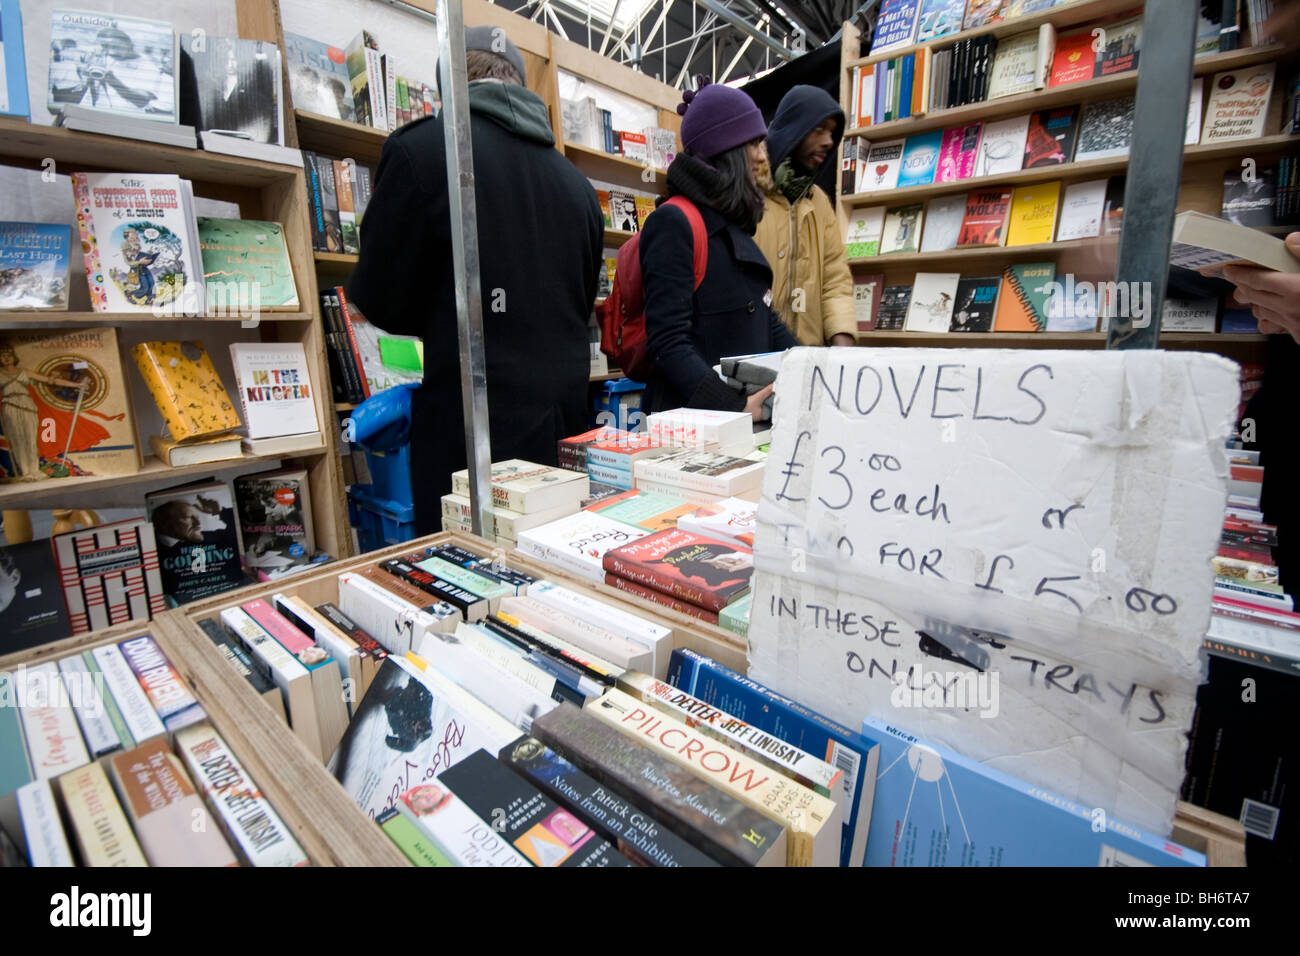 2nd hand book stall at London's Spitalfields market. - Stock Image